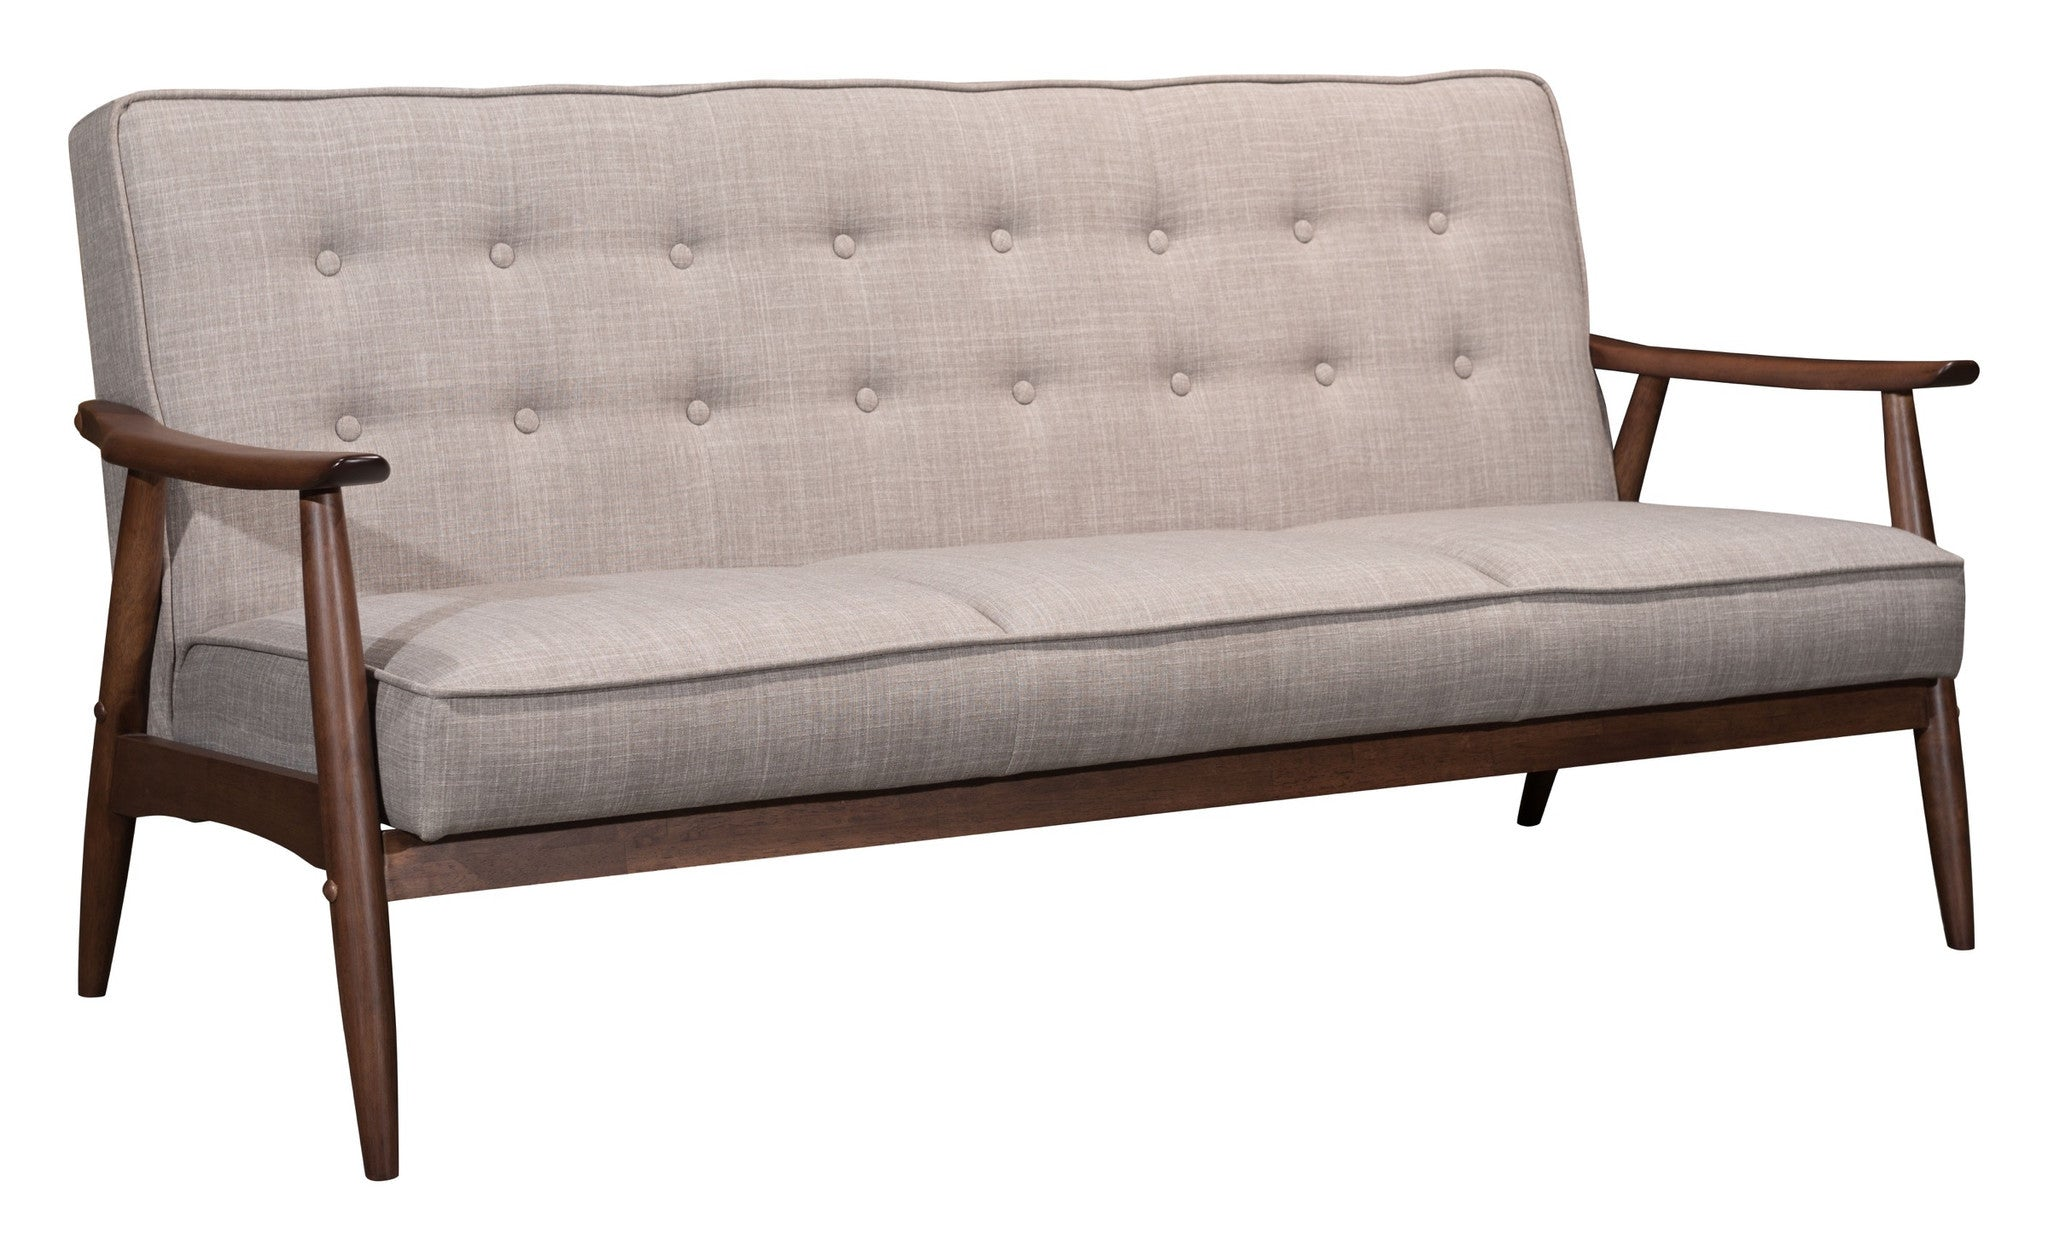 Rocky Sofa In Tufted Putty Gray Poly Linen On Walnut Finish Wood  Frame-Sofas-